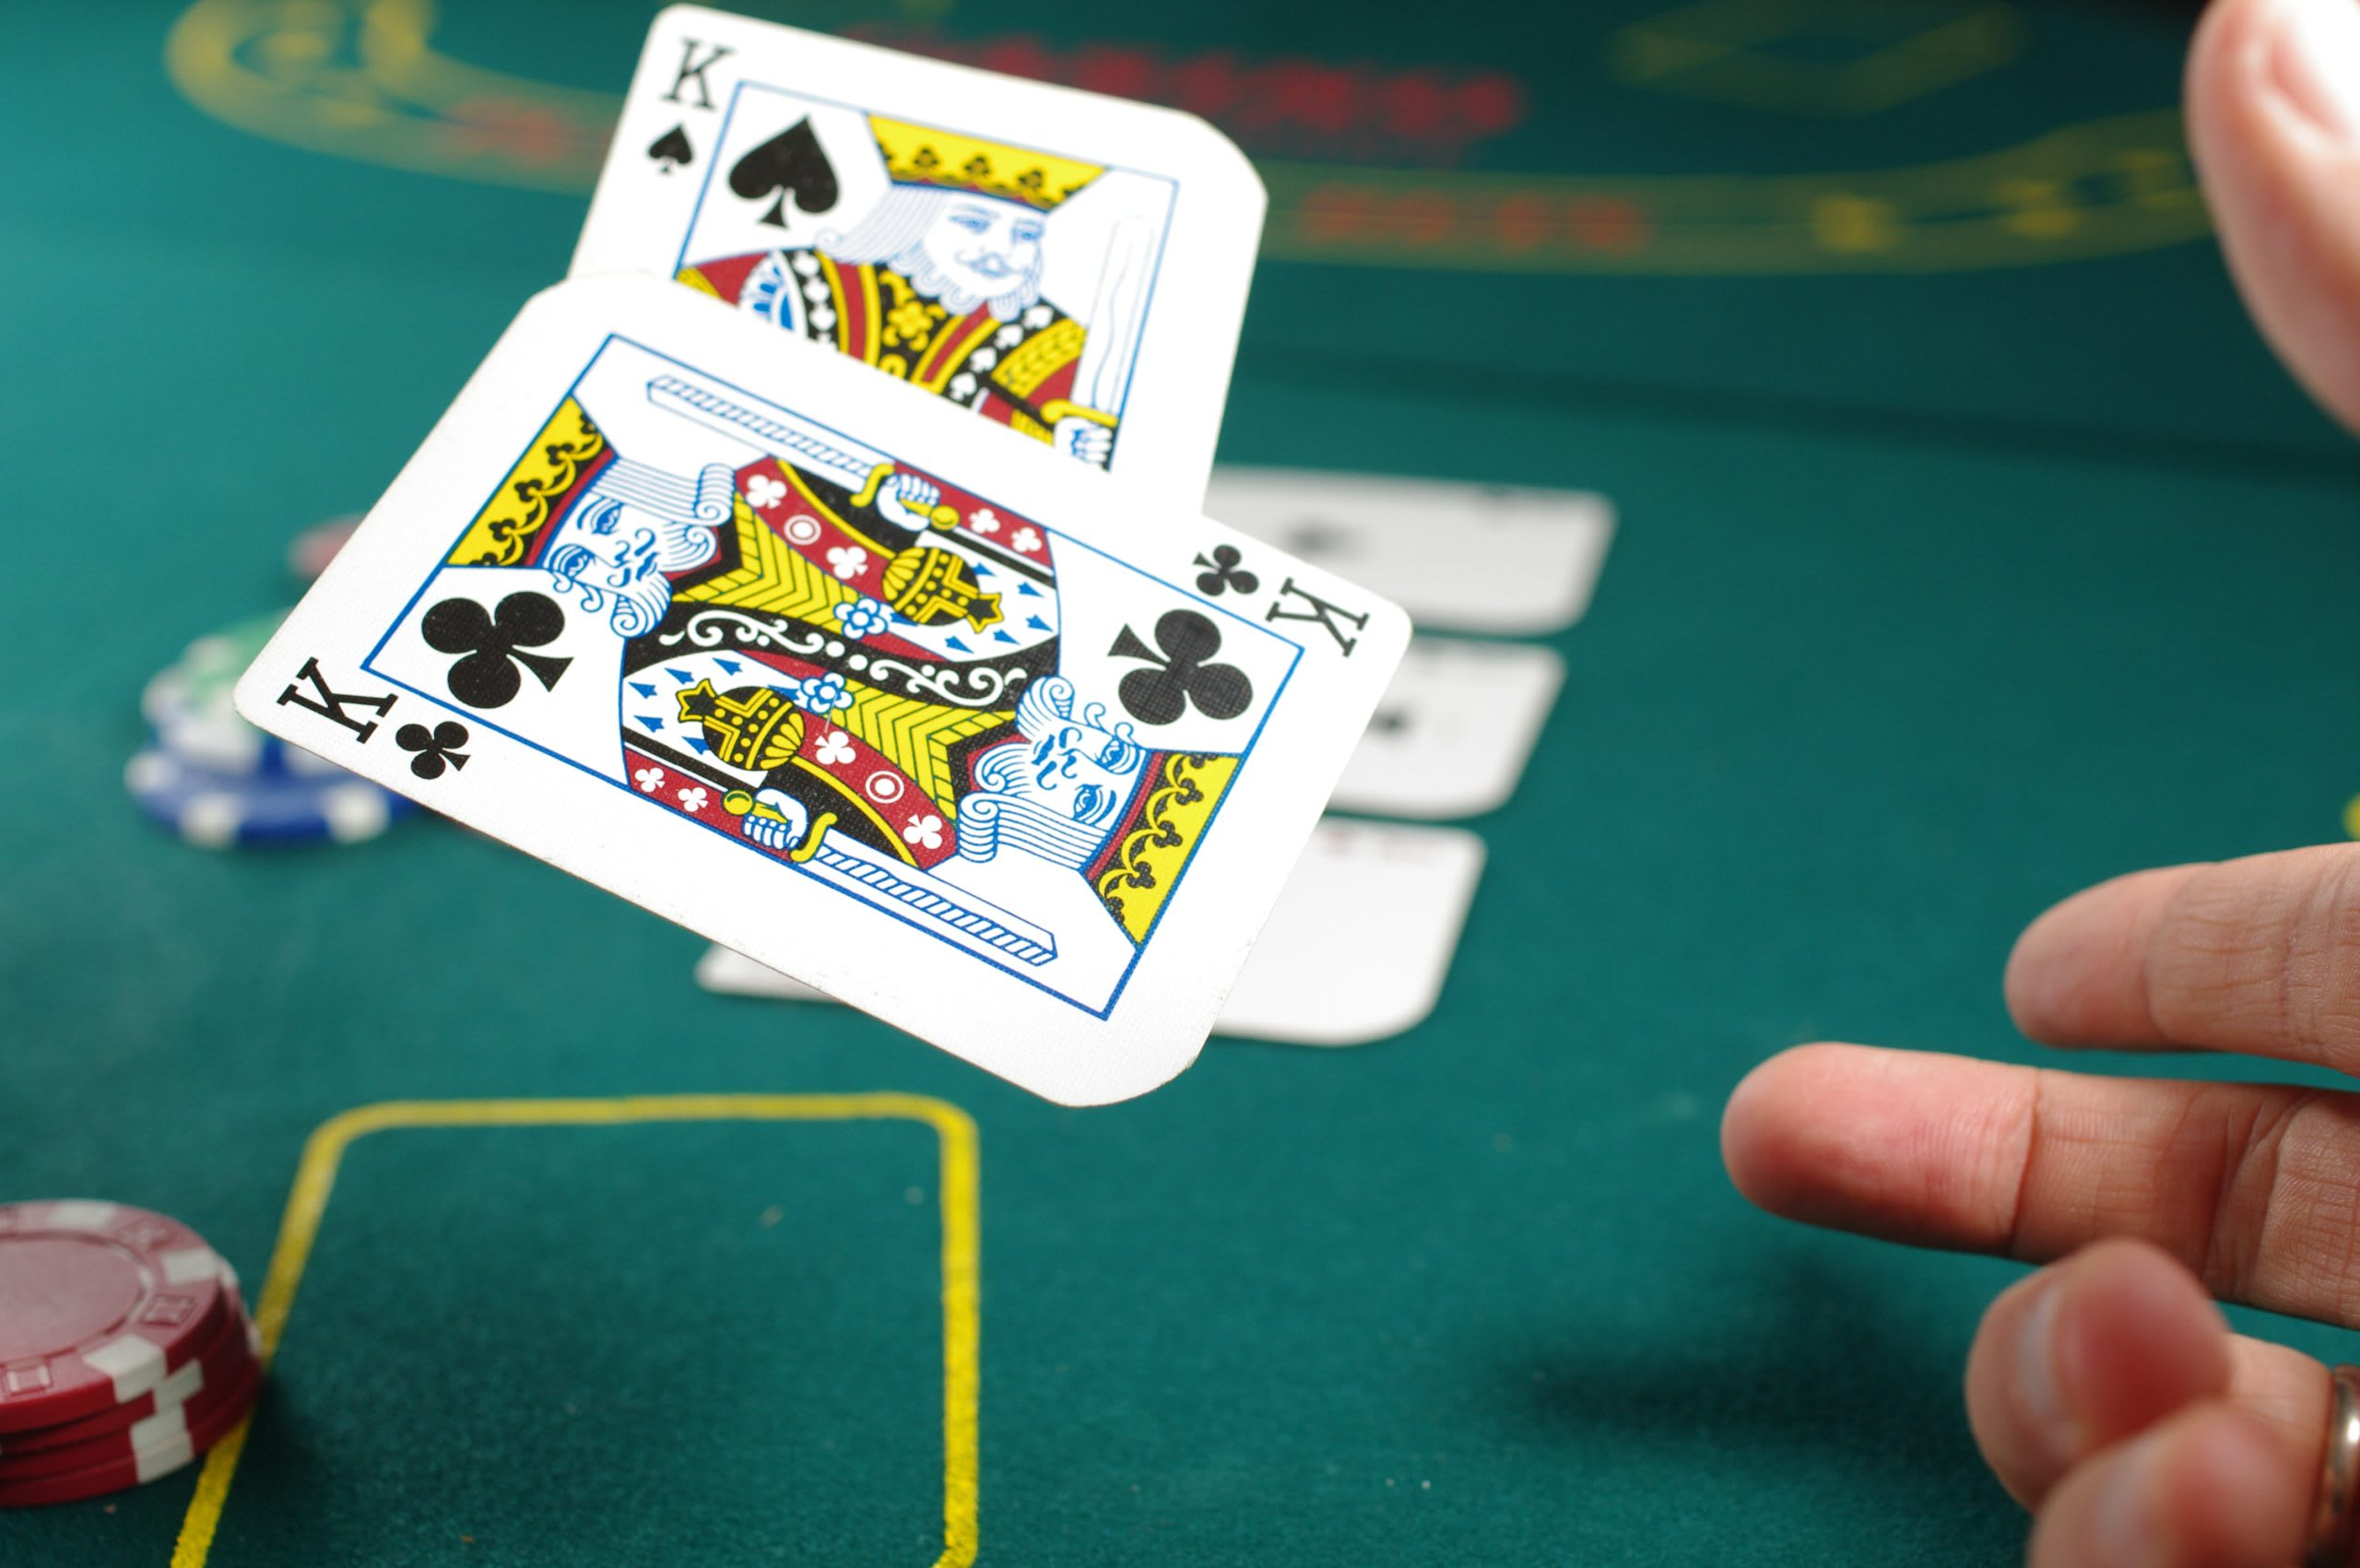 Card rooms